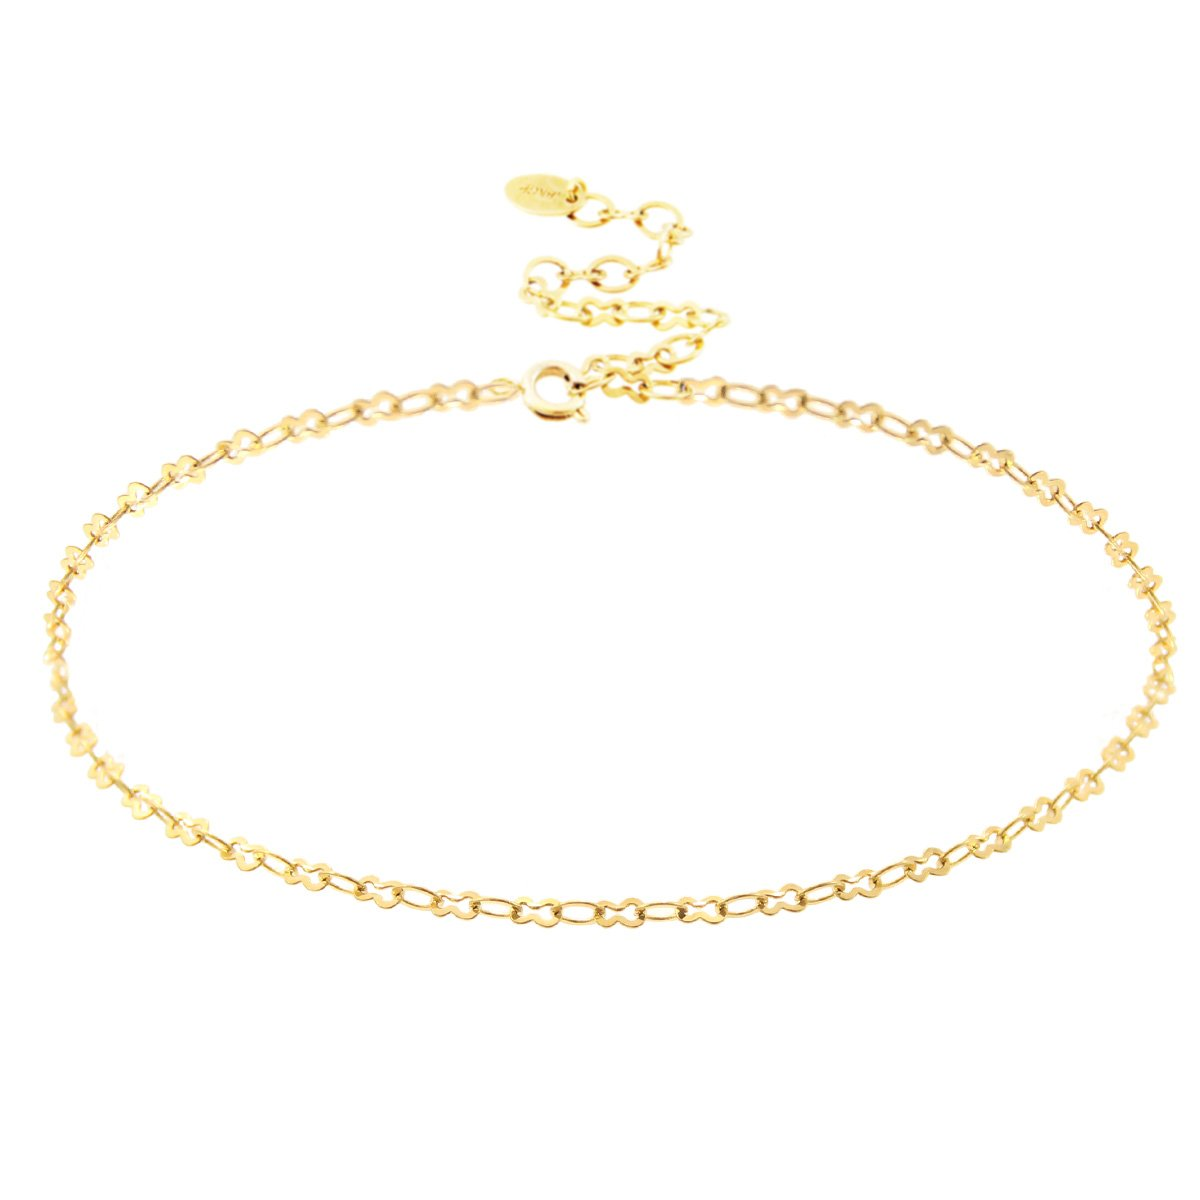 Choker Necklace 18K Gold Plated Chain Choker.Approx. 15'' Adjustable length.